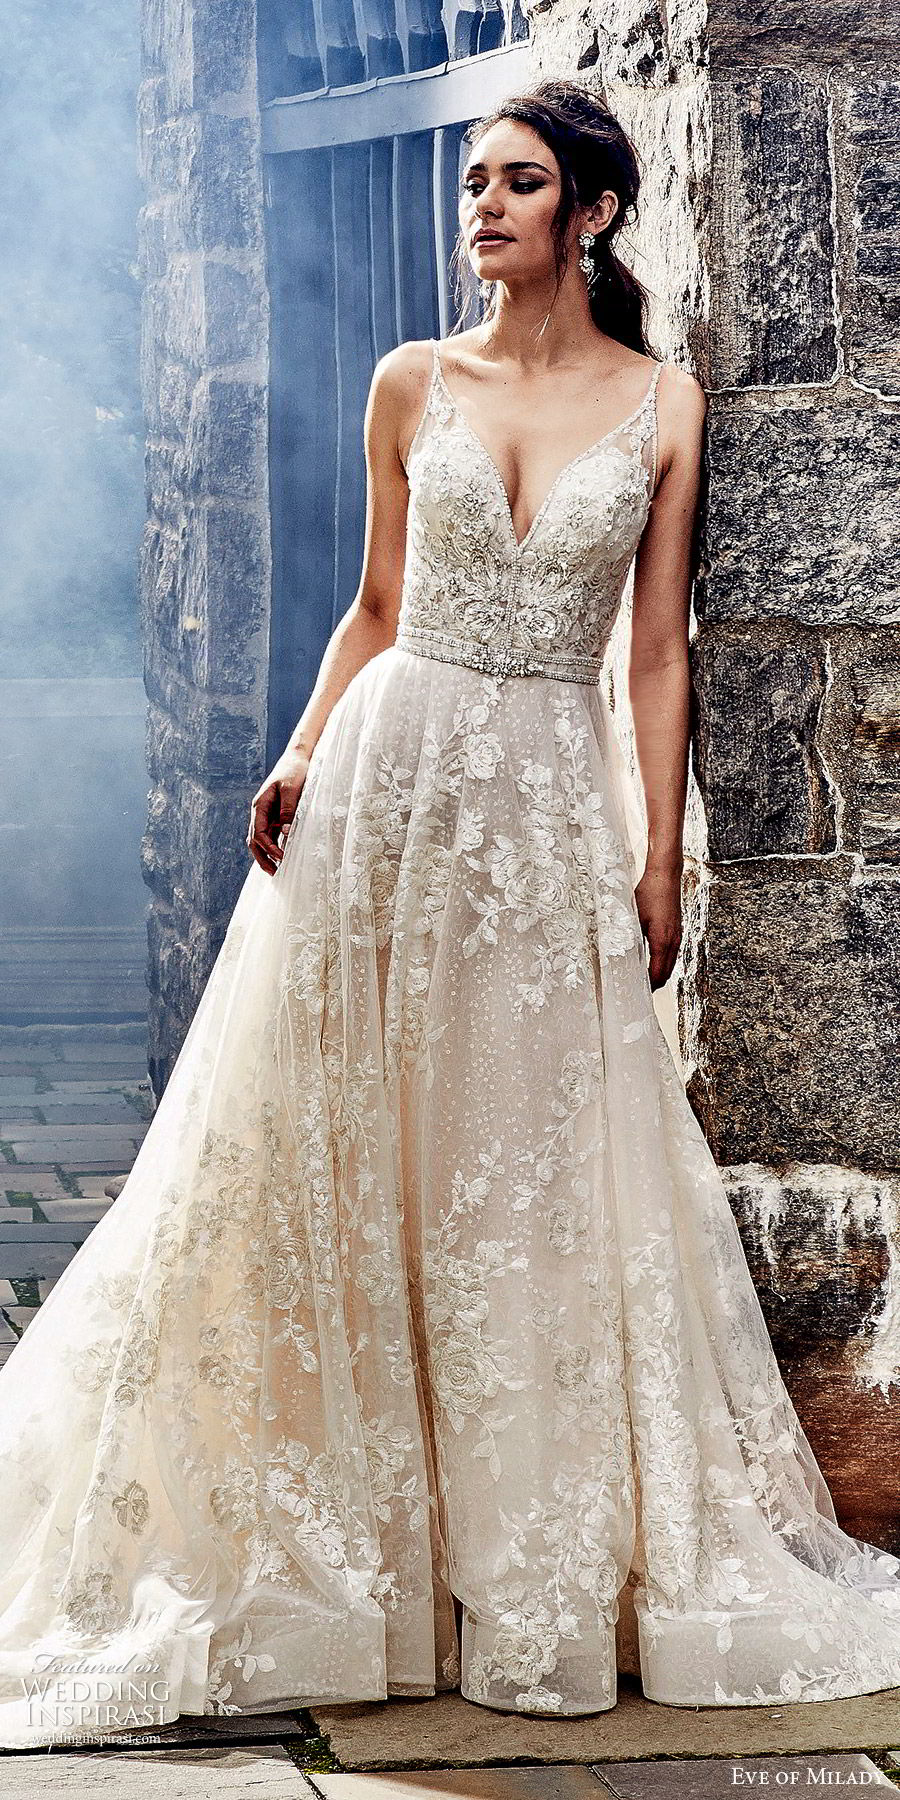 eve of milady fall 2018 bridal sleeveless thin beaded straps fully embellished a line ball gown wedding dress romantic glitzy chapel train (6) mv